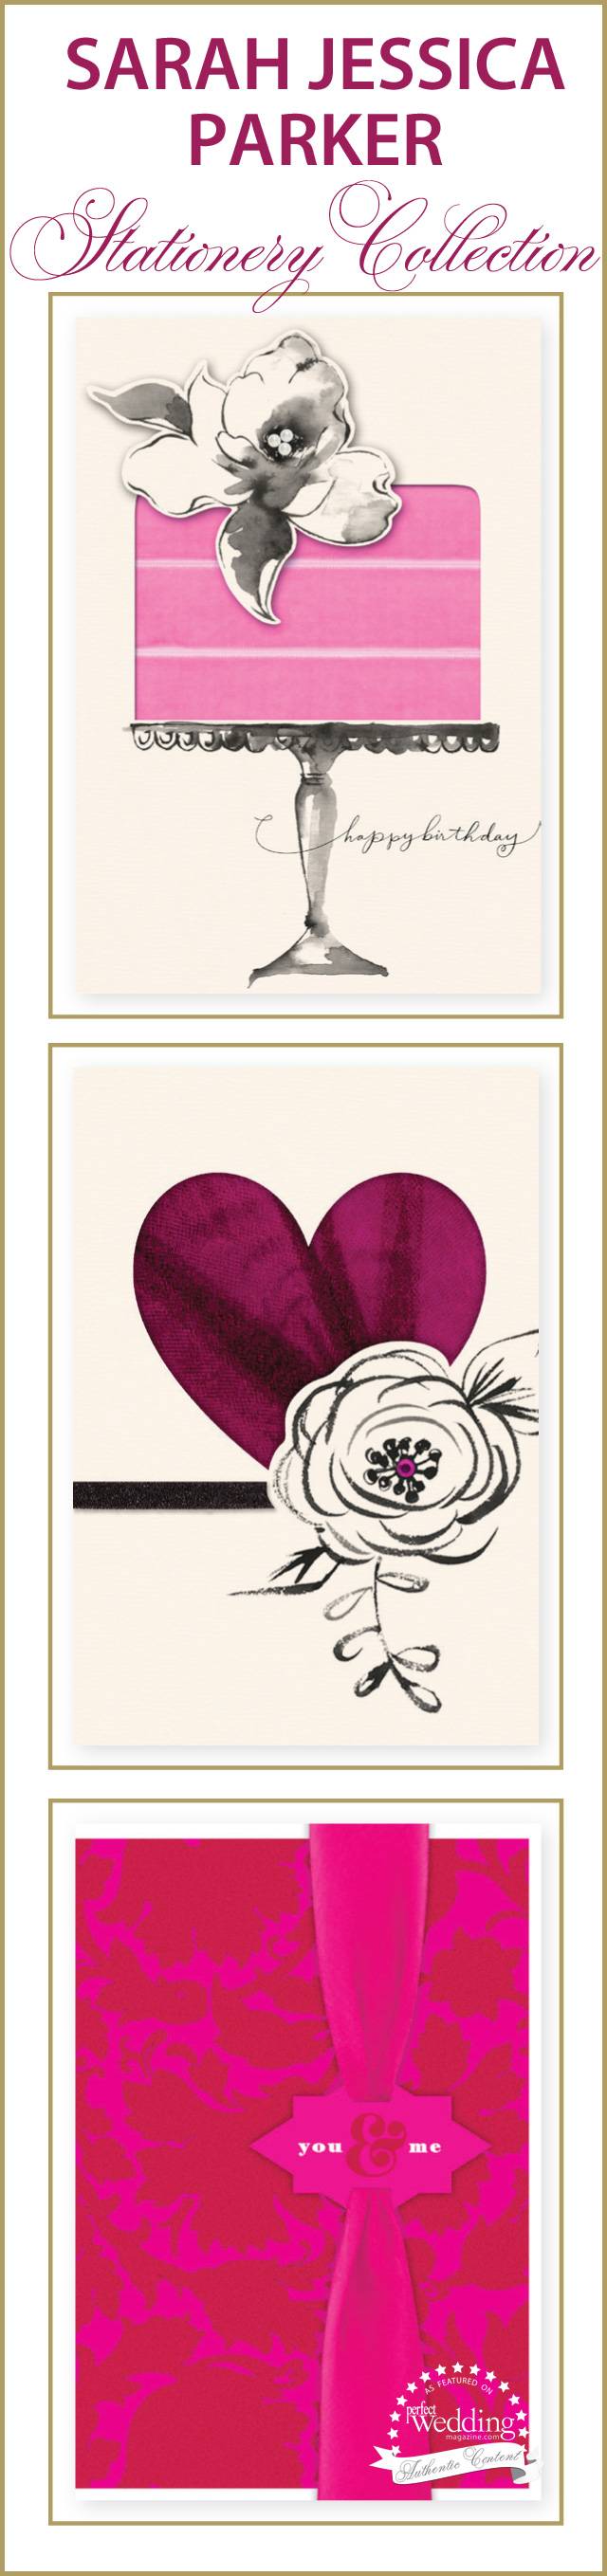 SJP Stationery collection, Hallmark, Perfect Wedding Magazine, Wedding Stationery